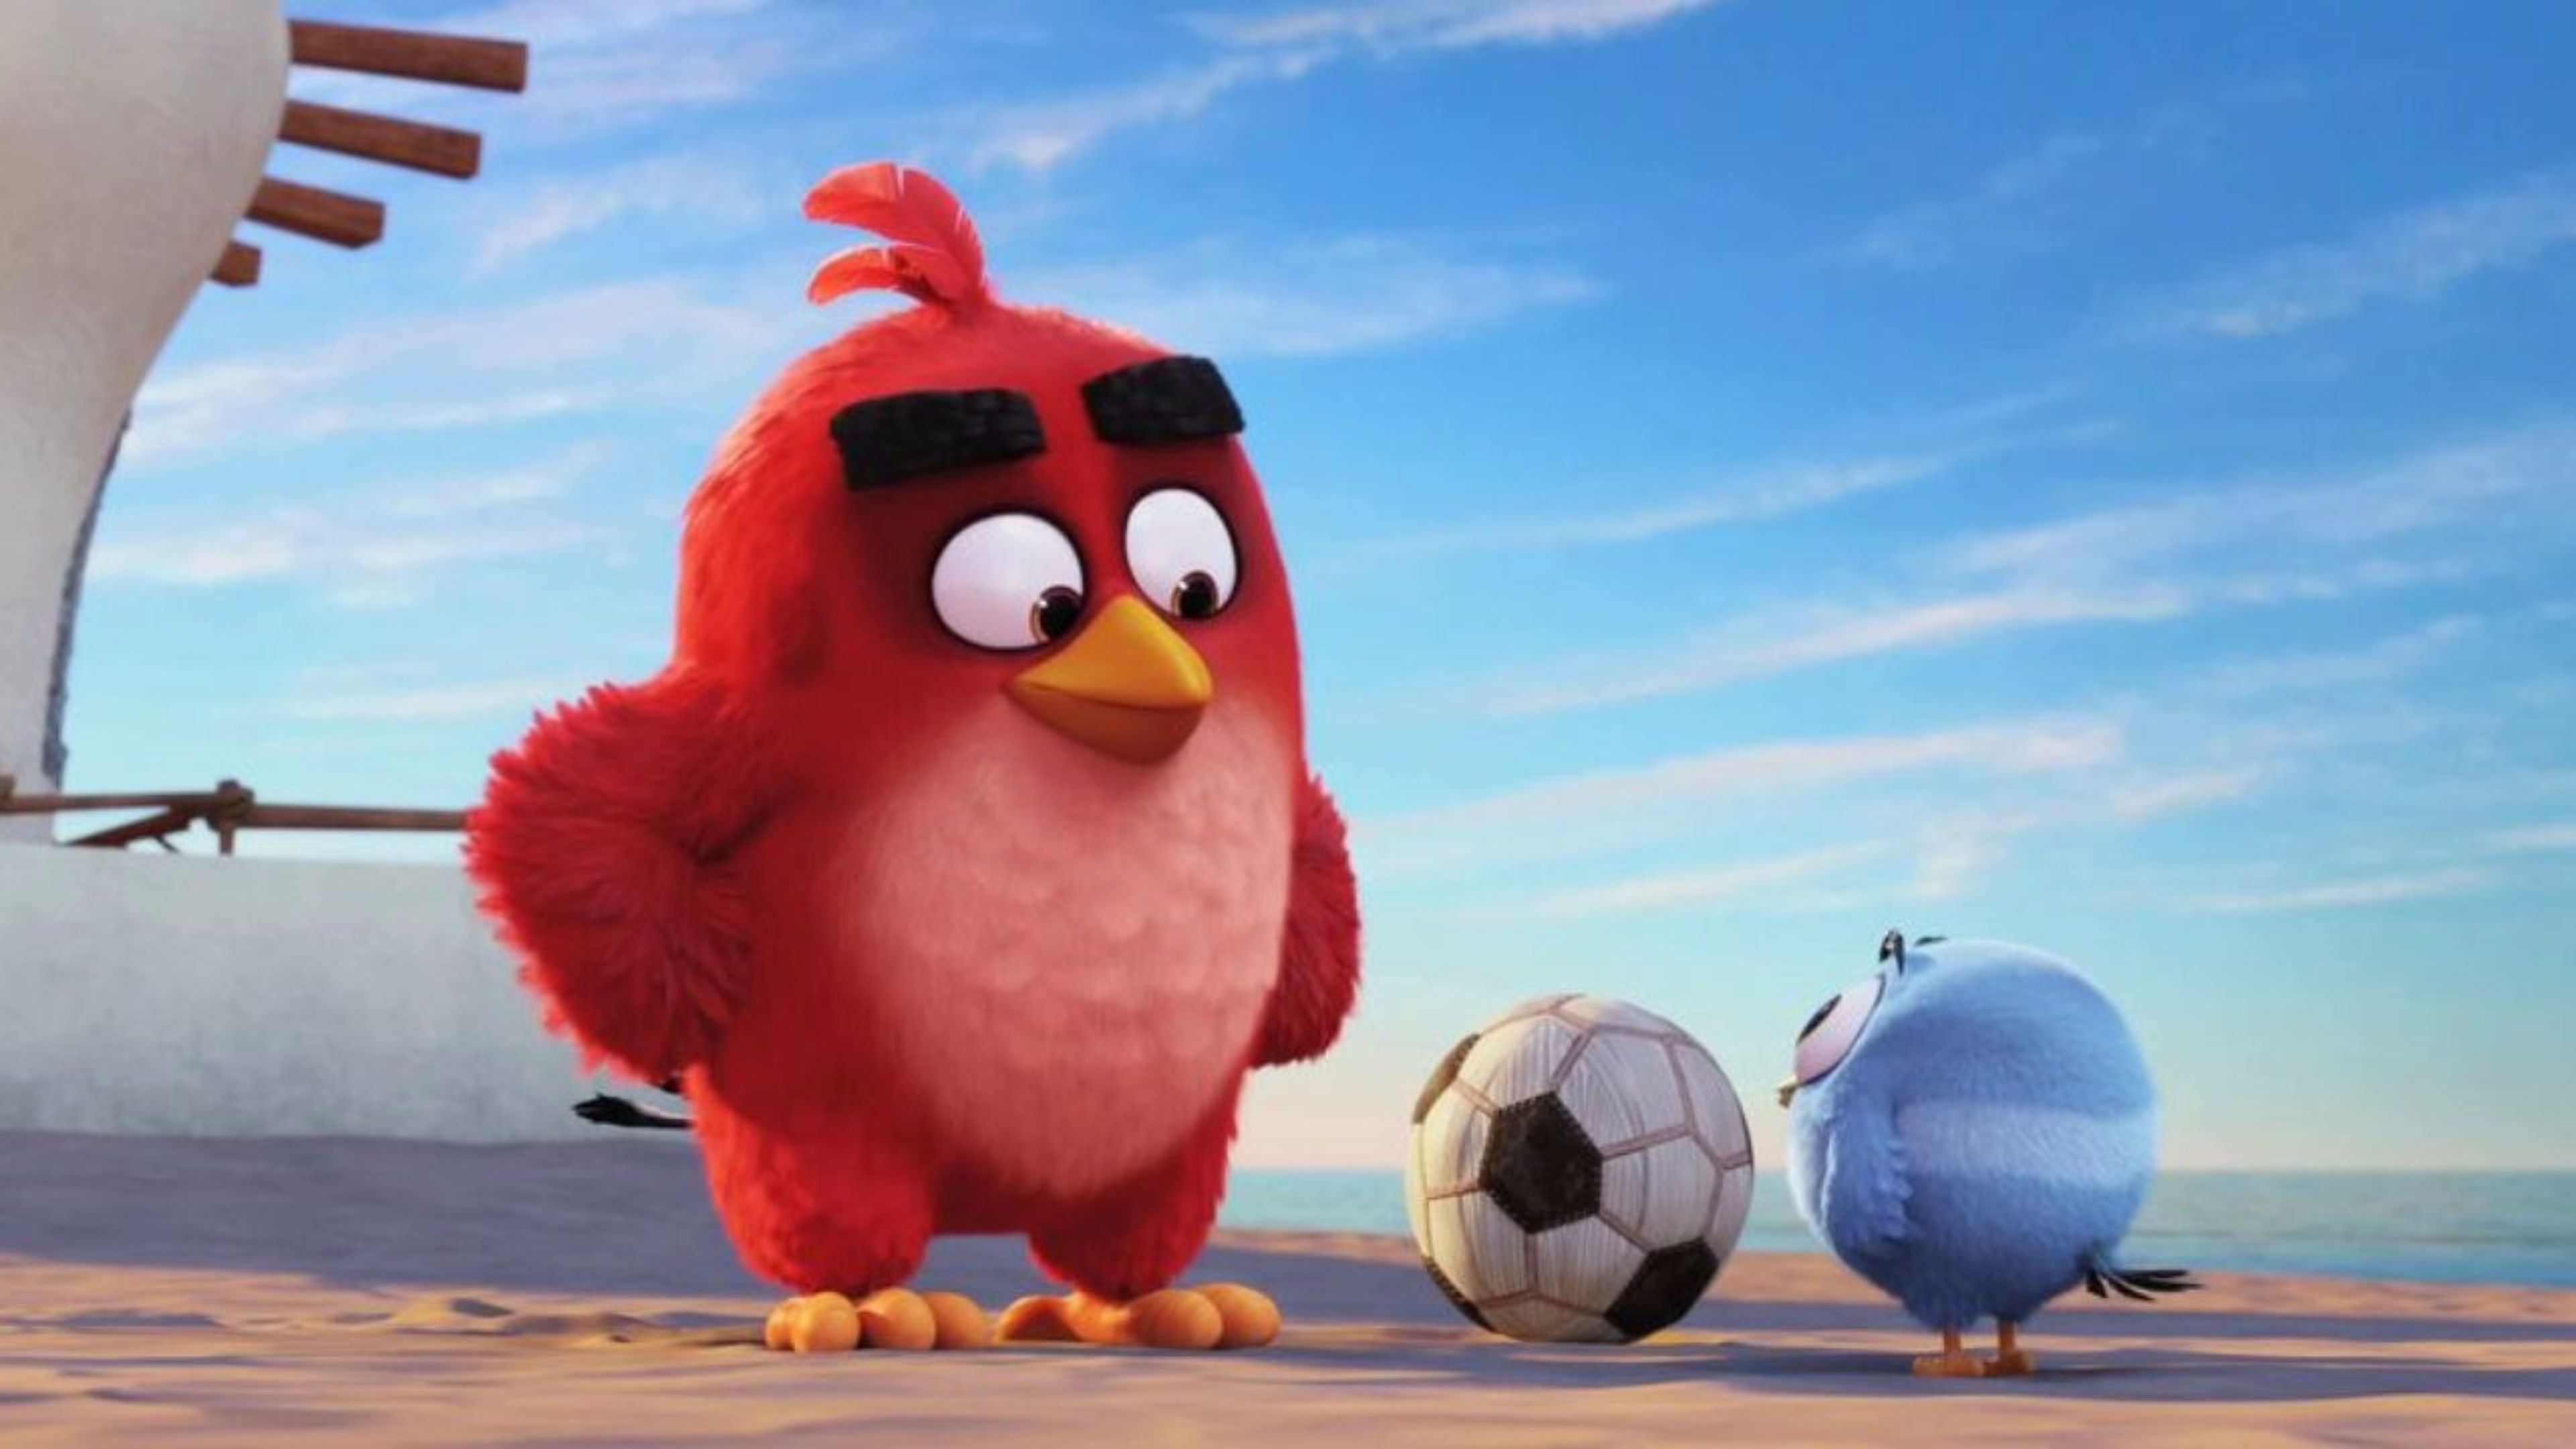 The Angry Birds Movie Full Hd Wallpapers - Angry Birds Movie Hd , HD Wallpaper & Backgrounds